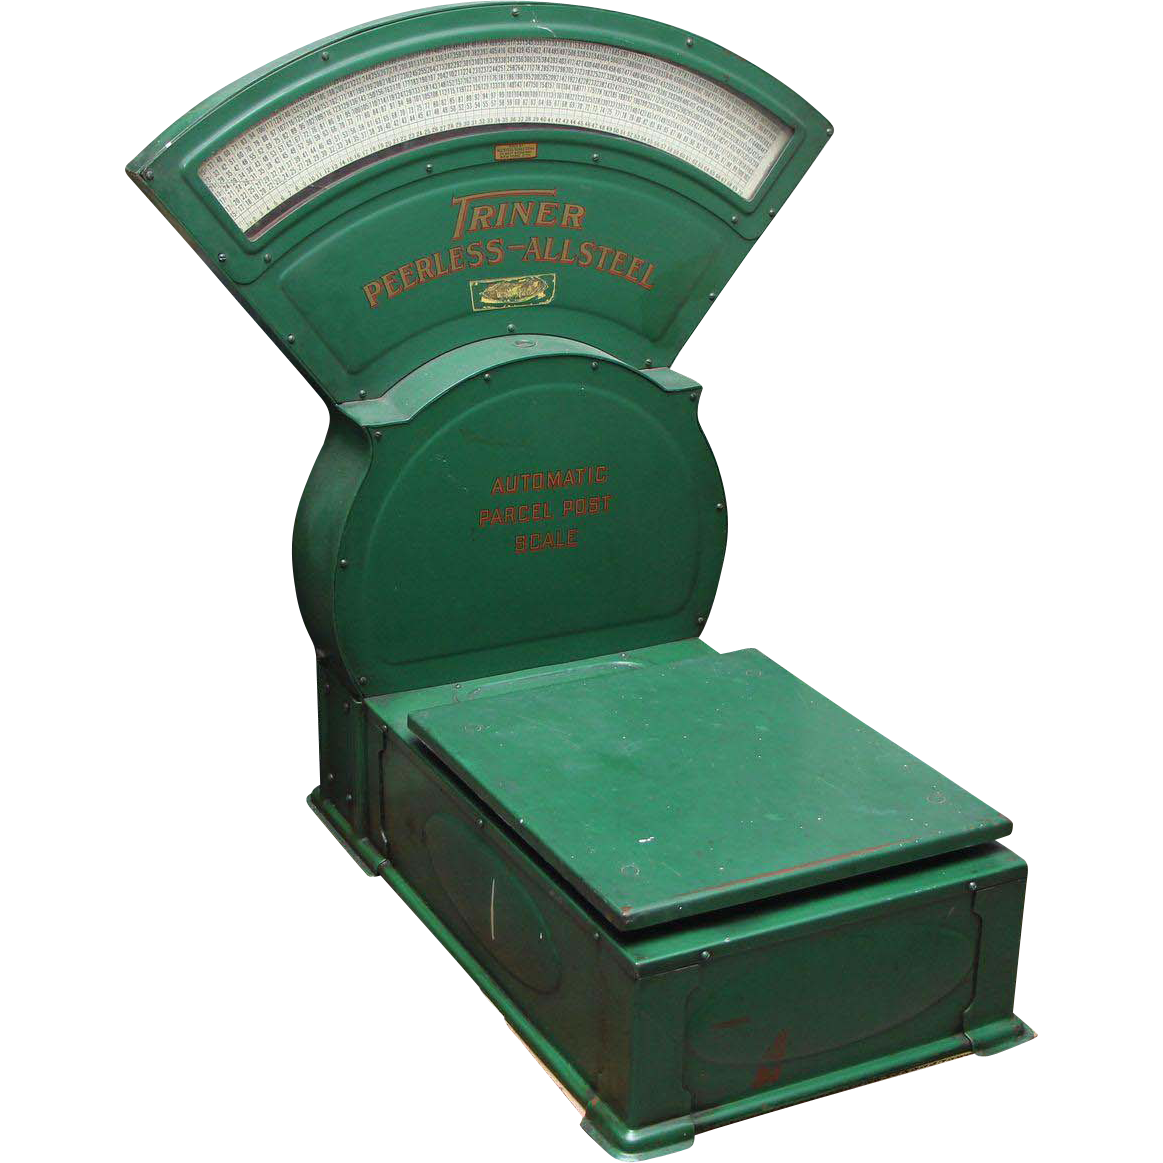 Vintage Triner Peerless All Steel green postage scale